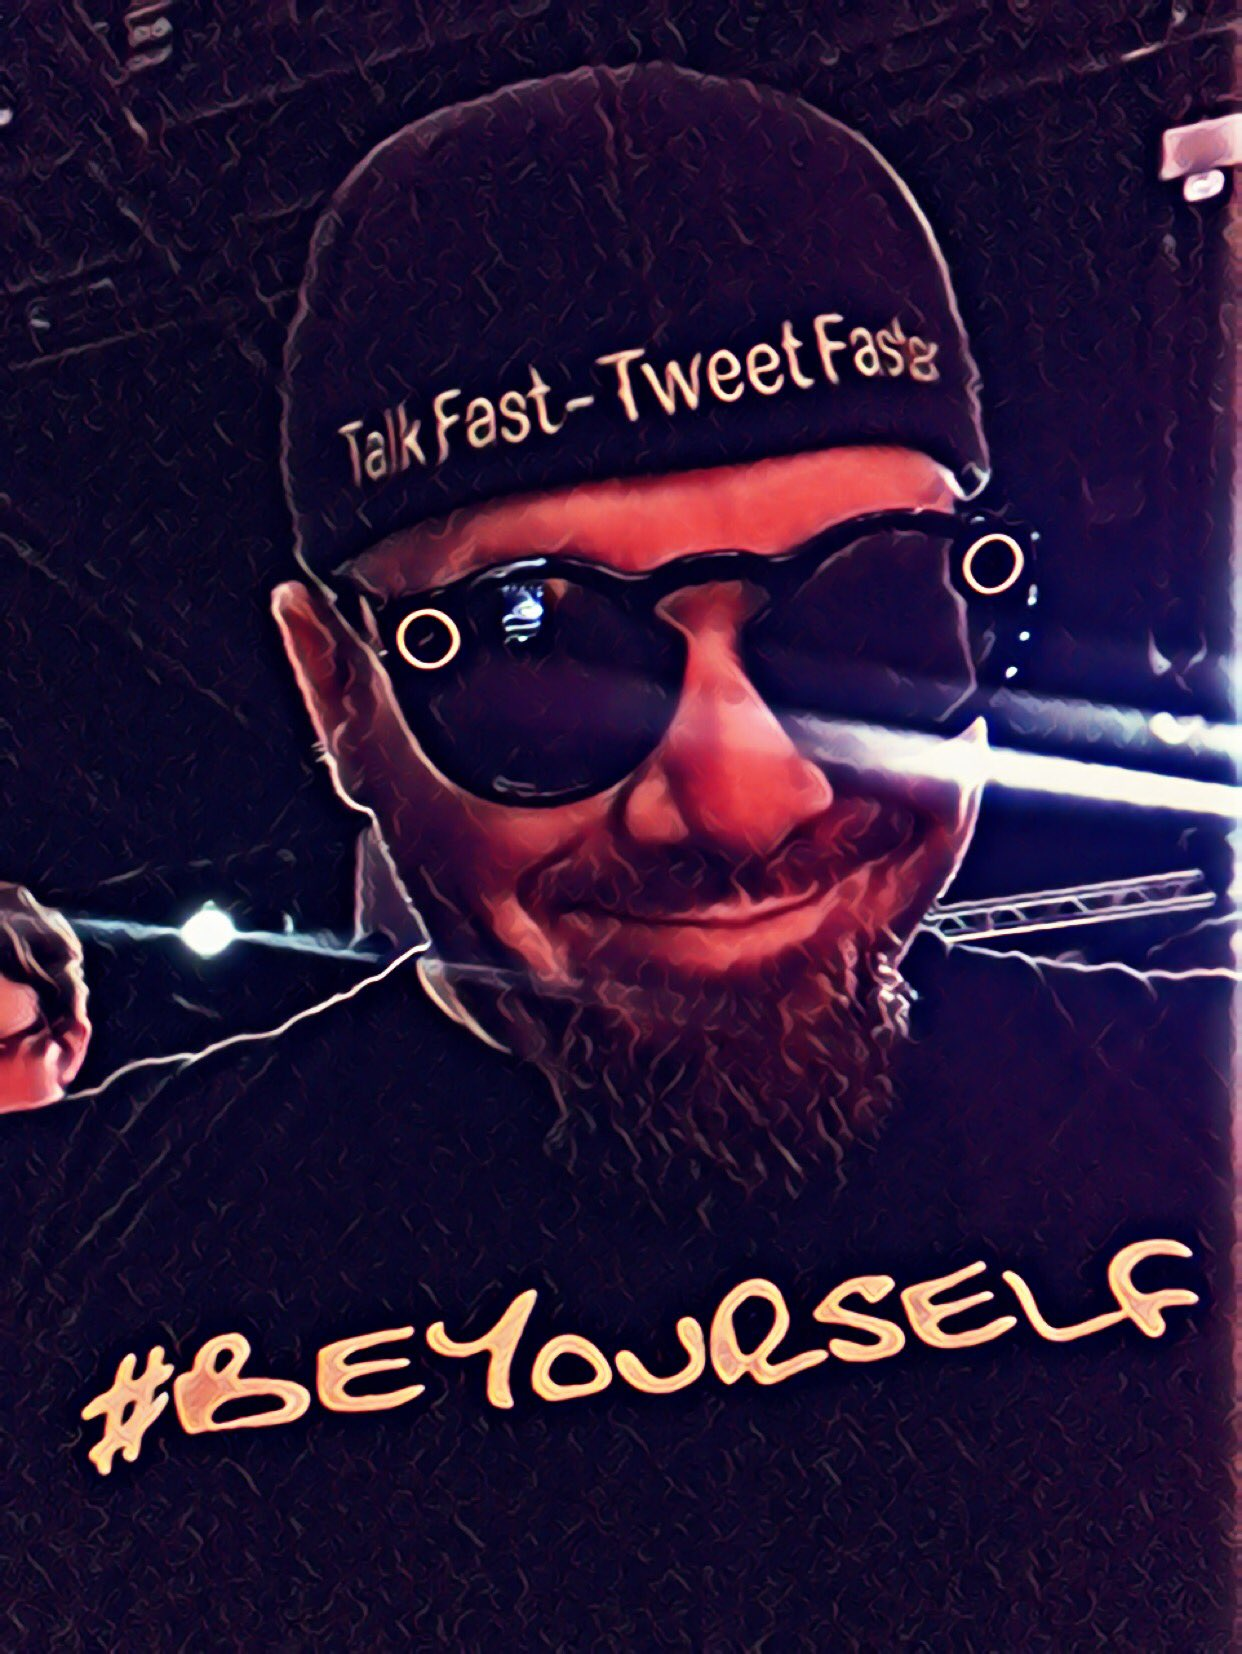 Talk fast tweet faster! Thanks @Phil_Mershon for the love on stage! #SMMW17 #BeYourself https://t.co/jhwhT2xgFj